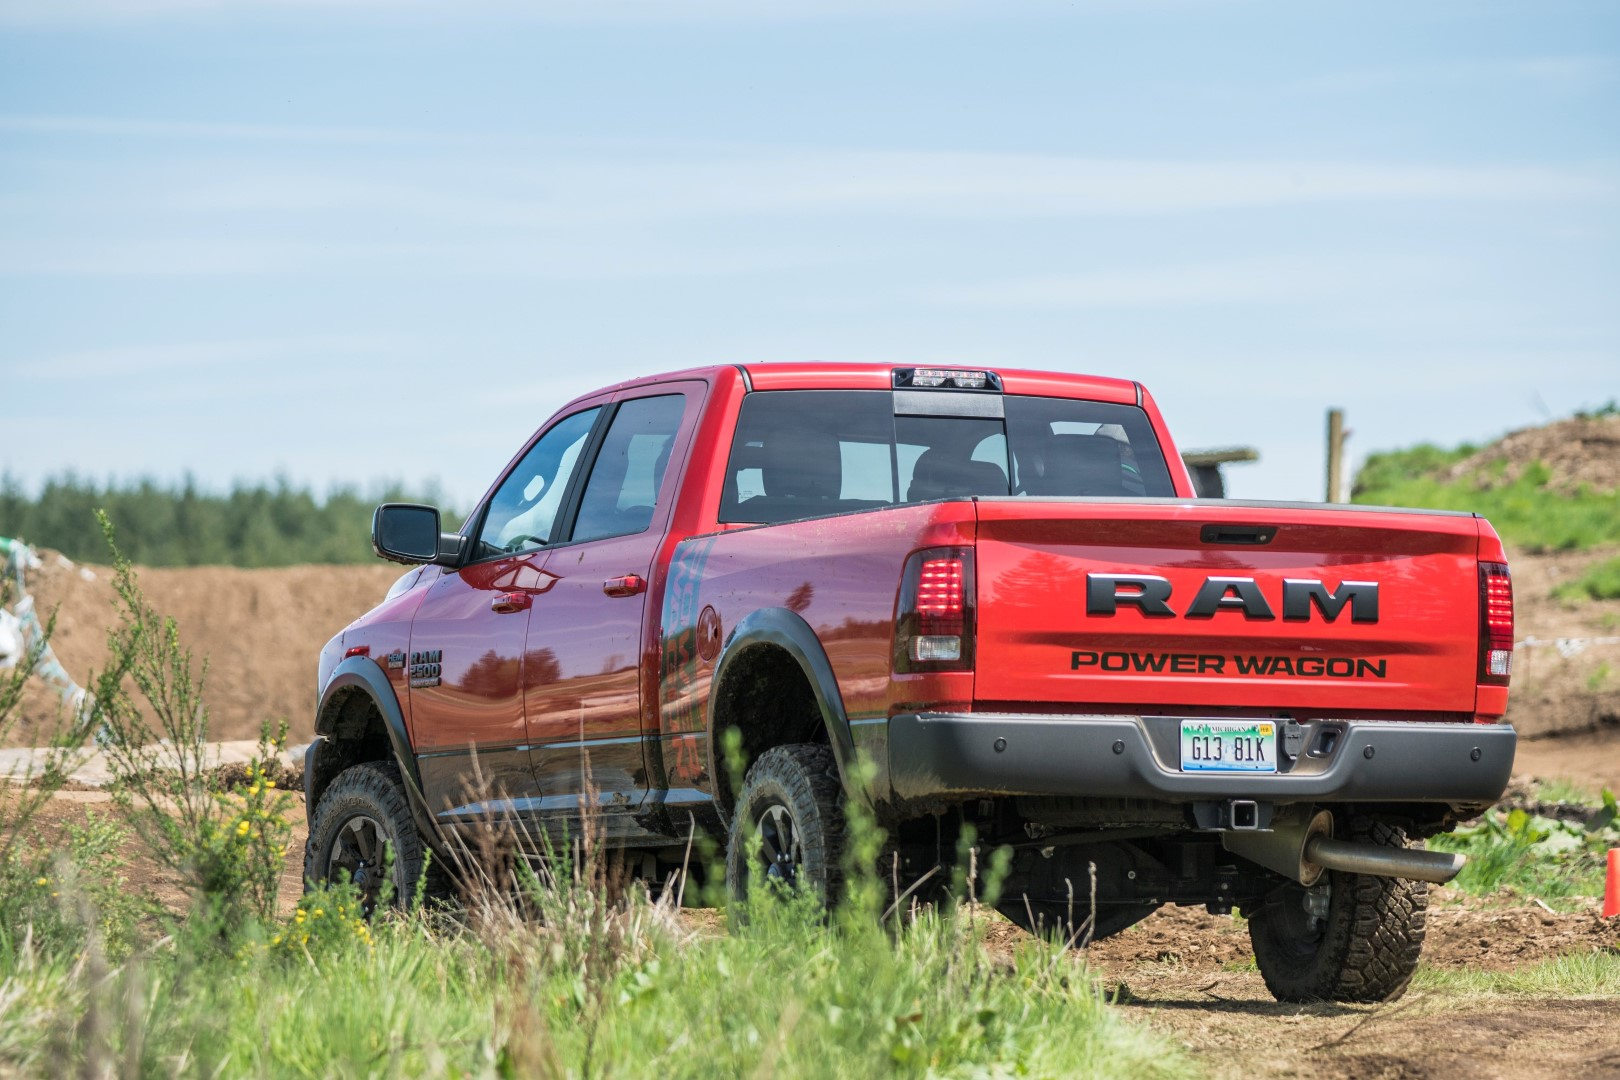 RAM Power Wagon in the dirt